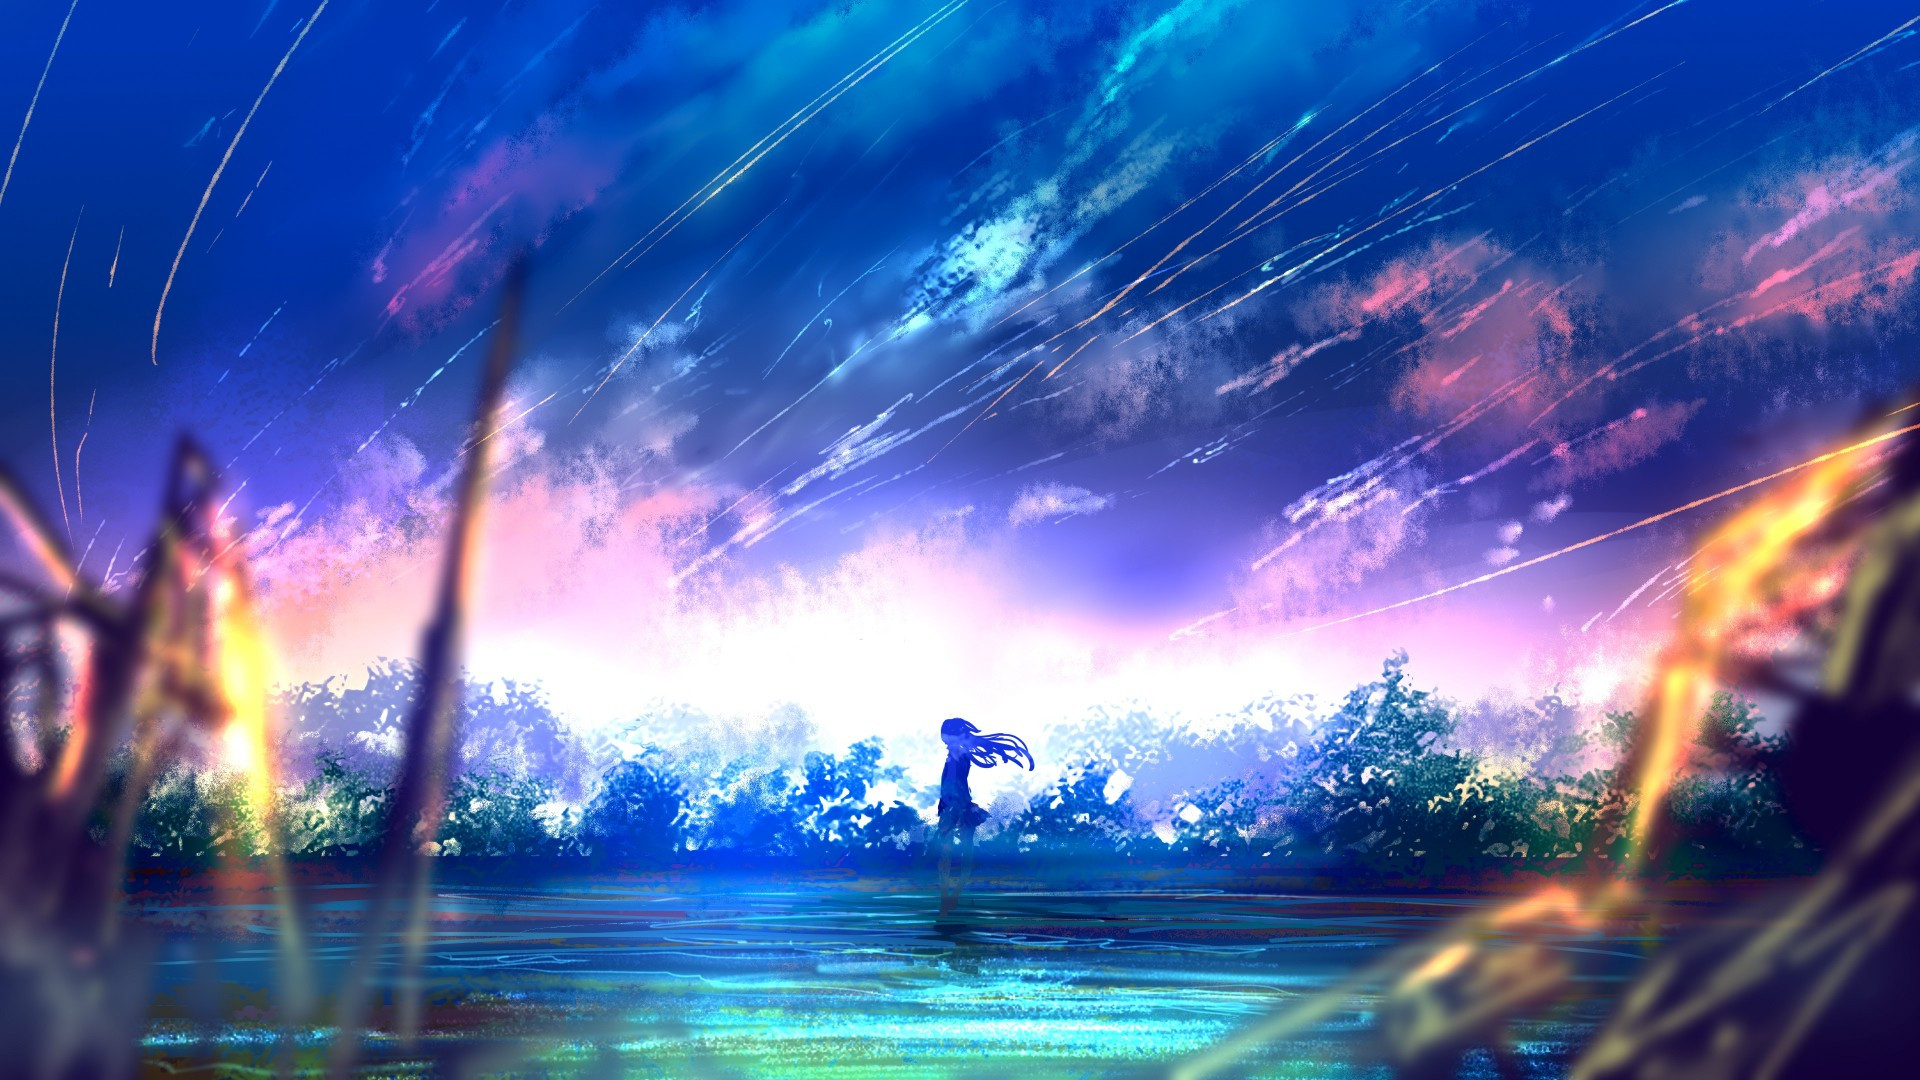 Iphone X Hd Wallpaper Space Download 1920x1080 Anime Girl Falling Stars Scenic